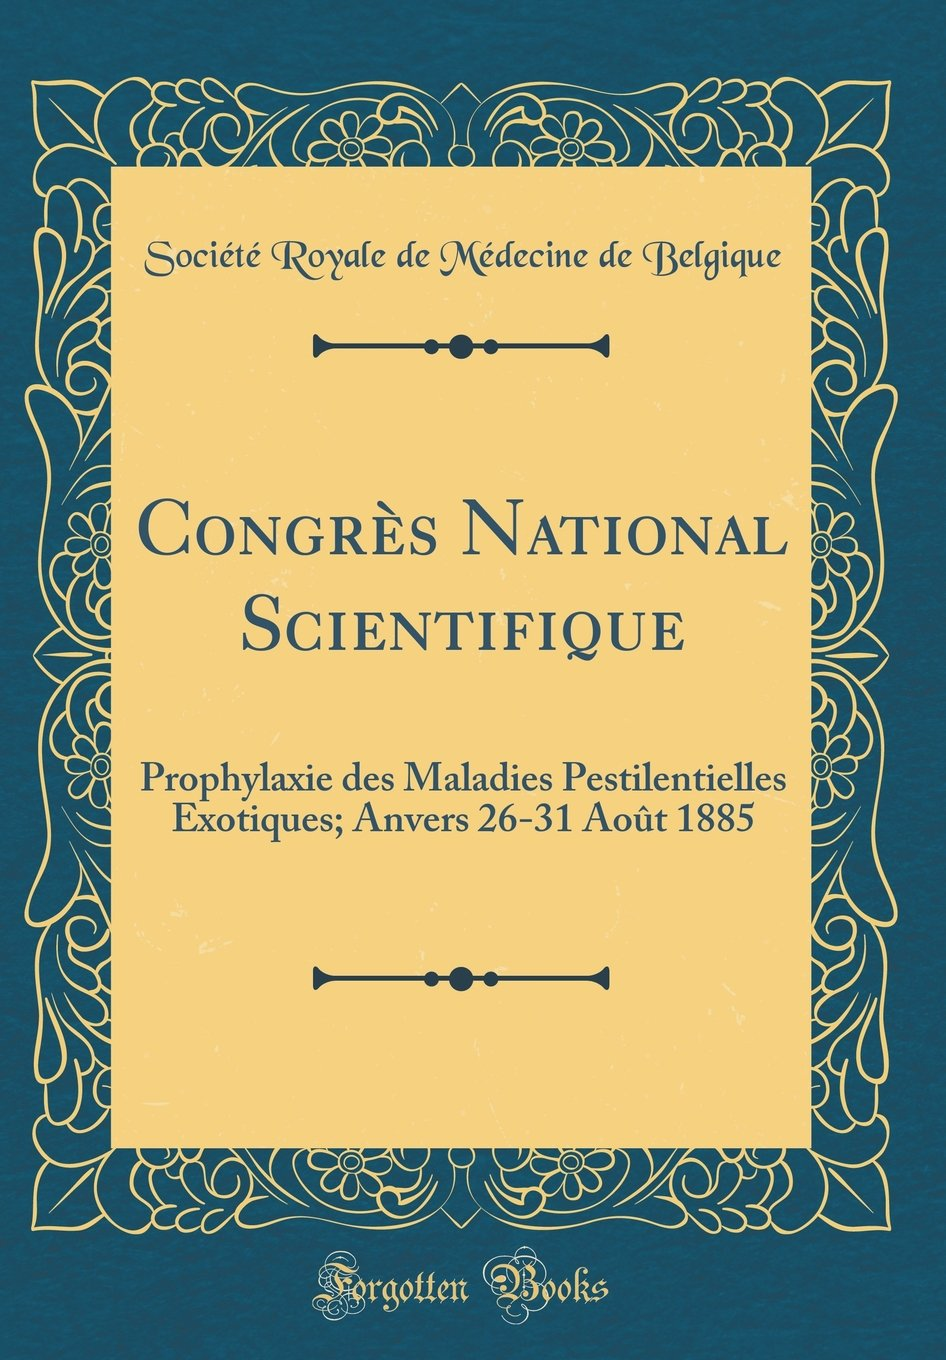 Congrès National Scientifique: Prophylaxie des Maladies Pestilentielles Exotiques; Anvers 26-31 Août 1885 (Classic Reprint) (French Edition) pdf epub